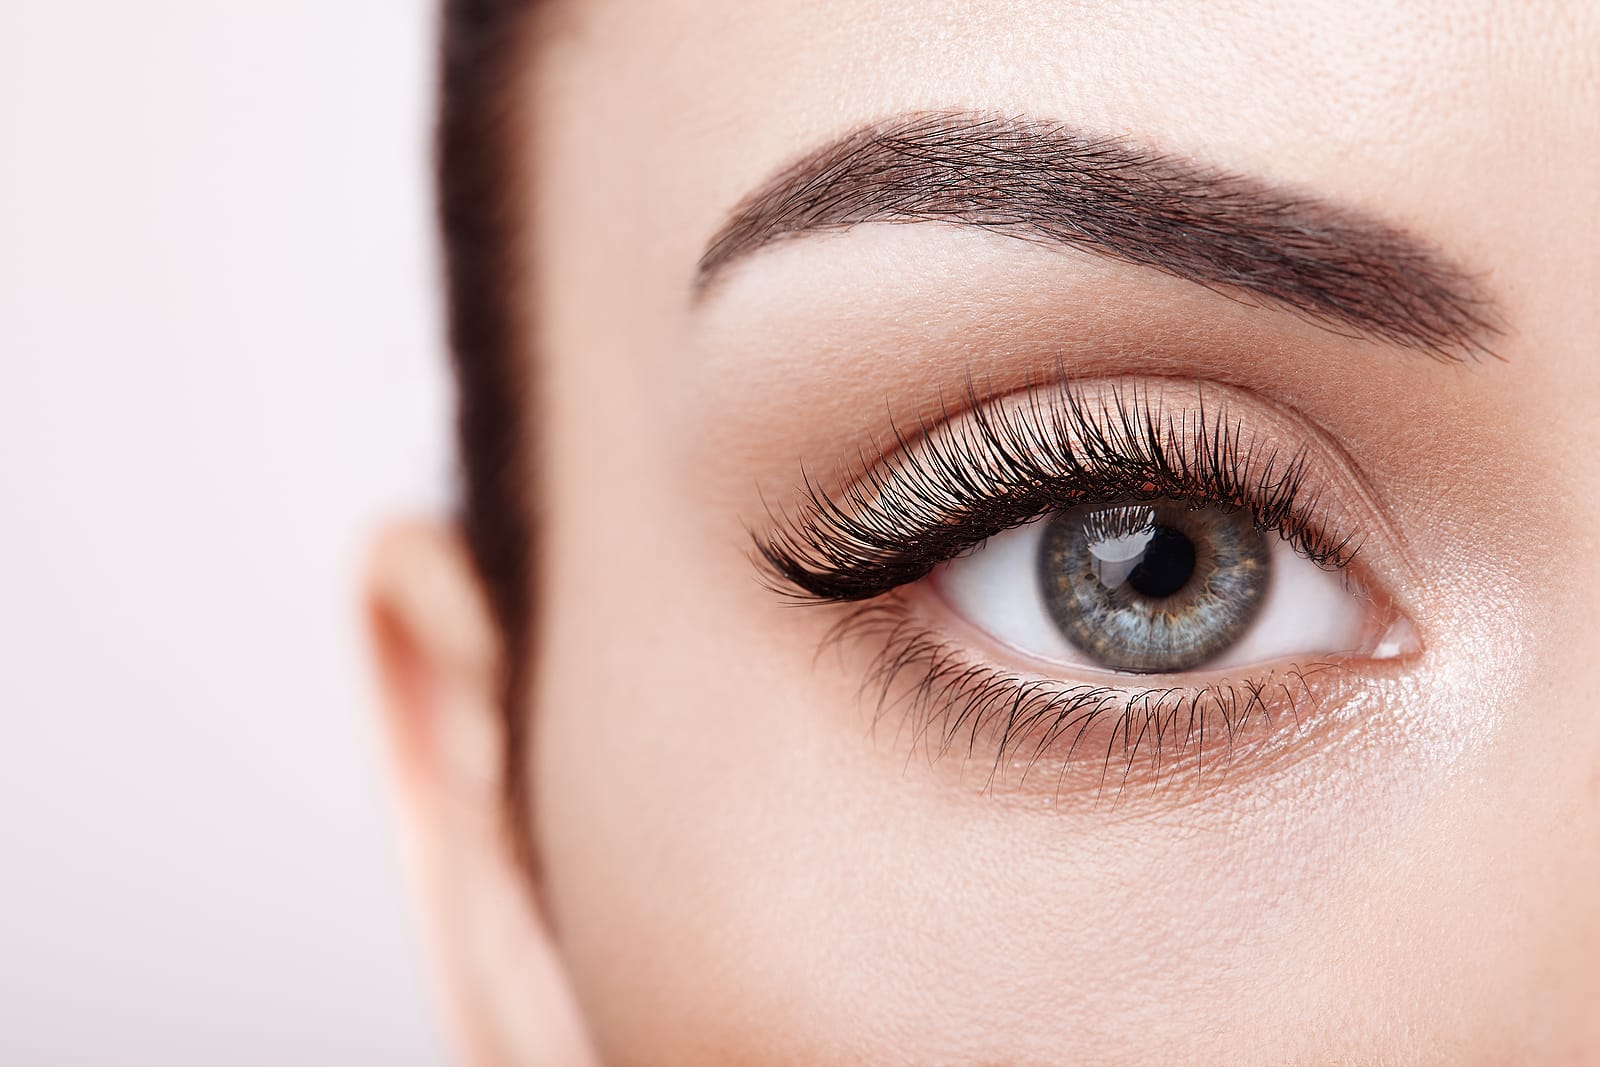 Are lash extensions safe? Dr. Anika's solution